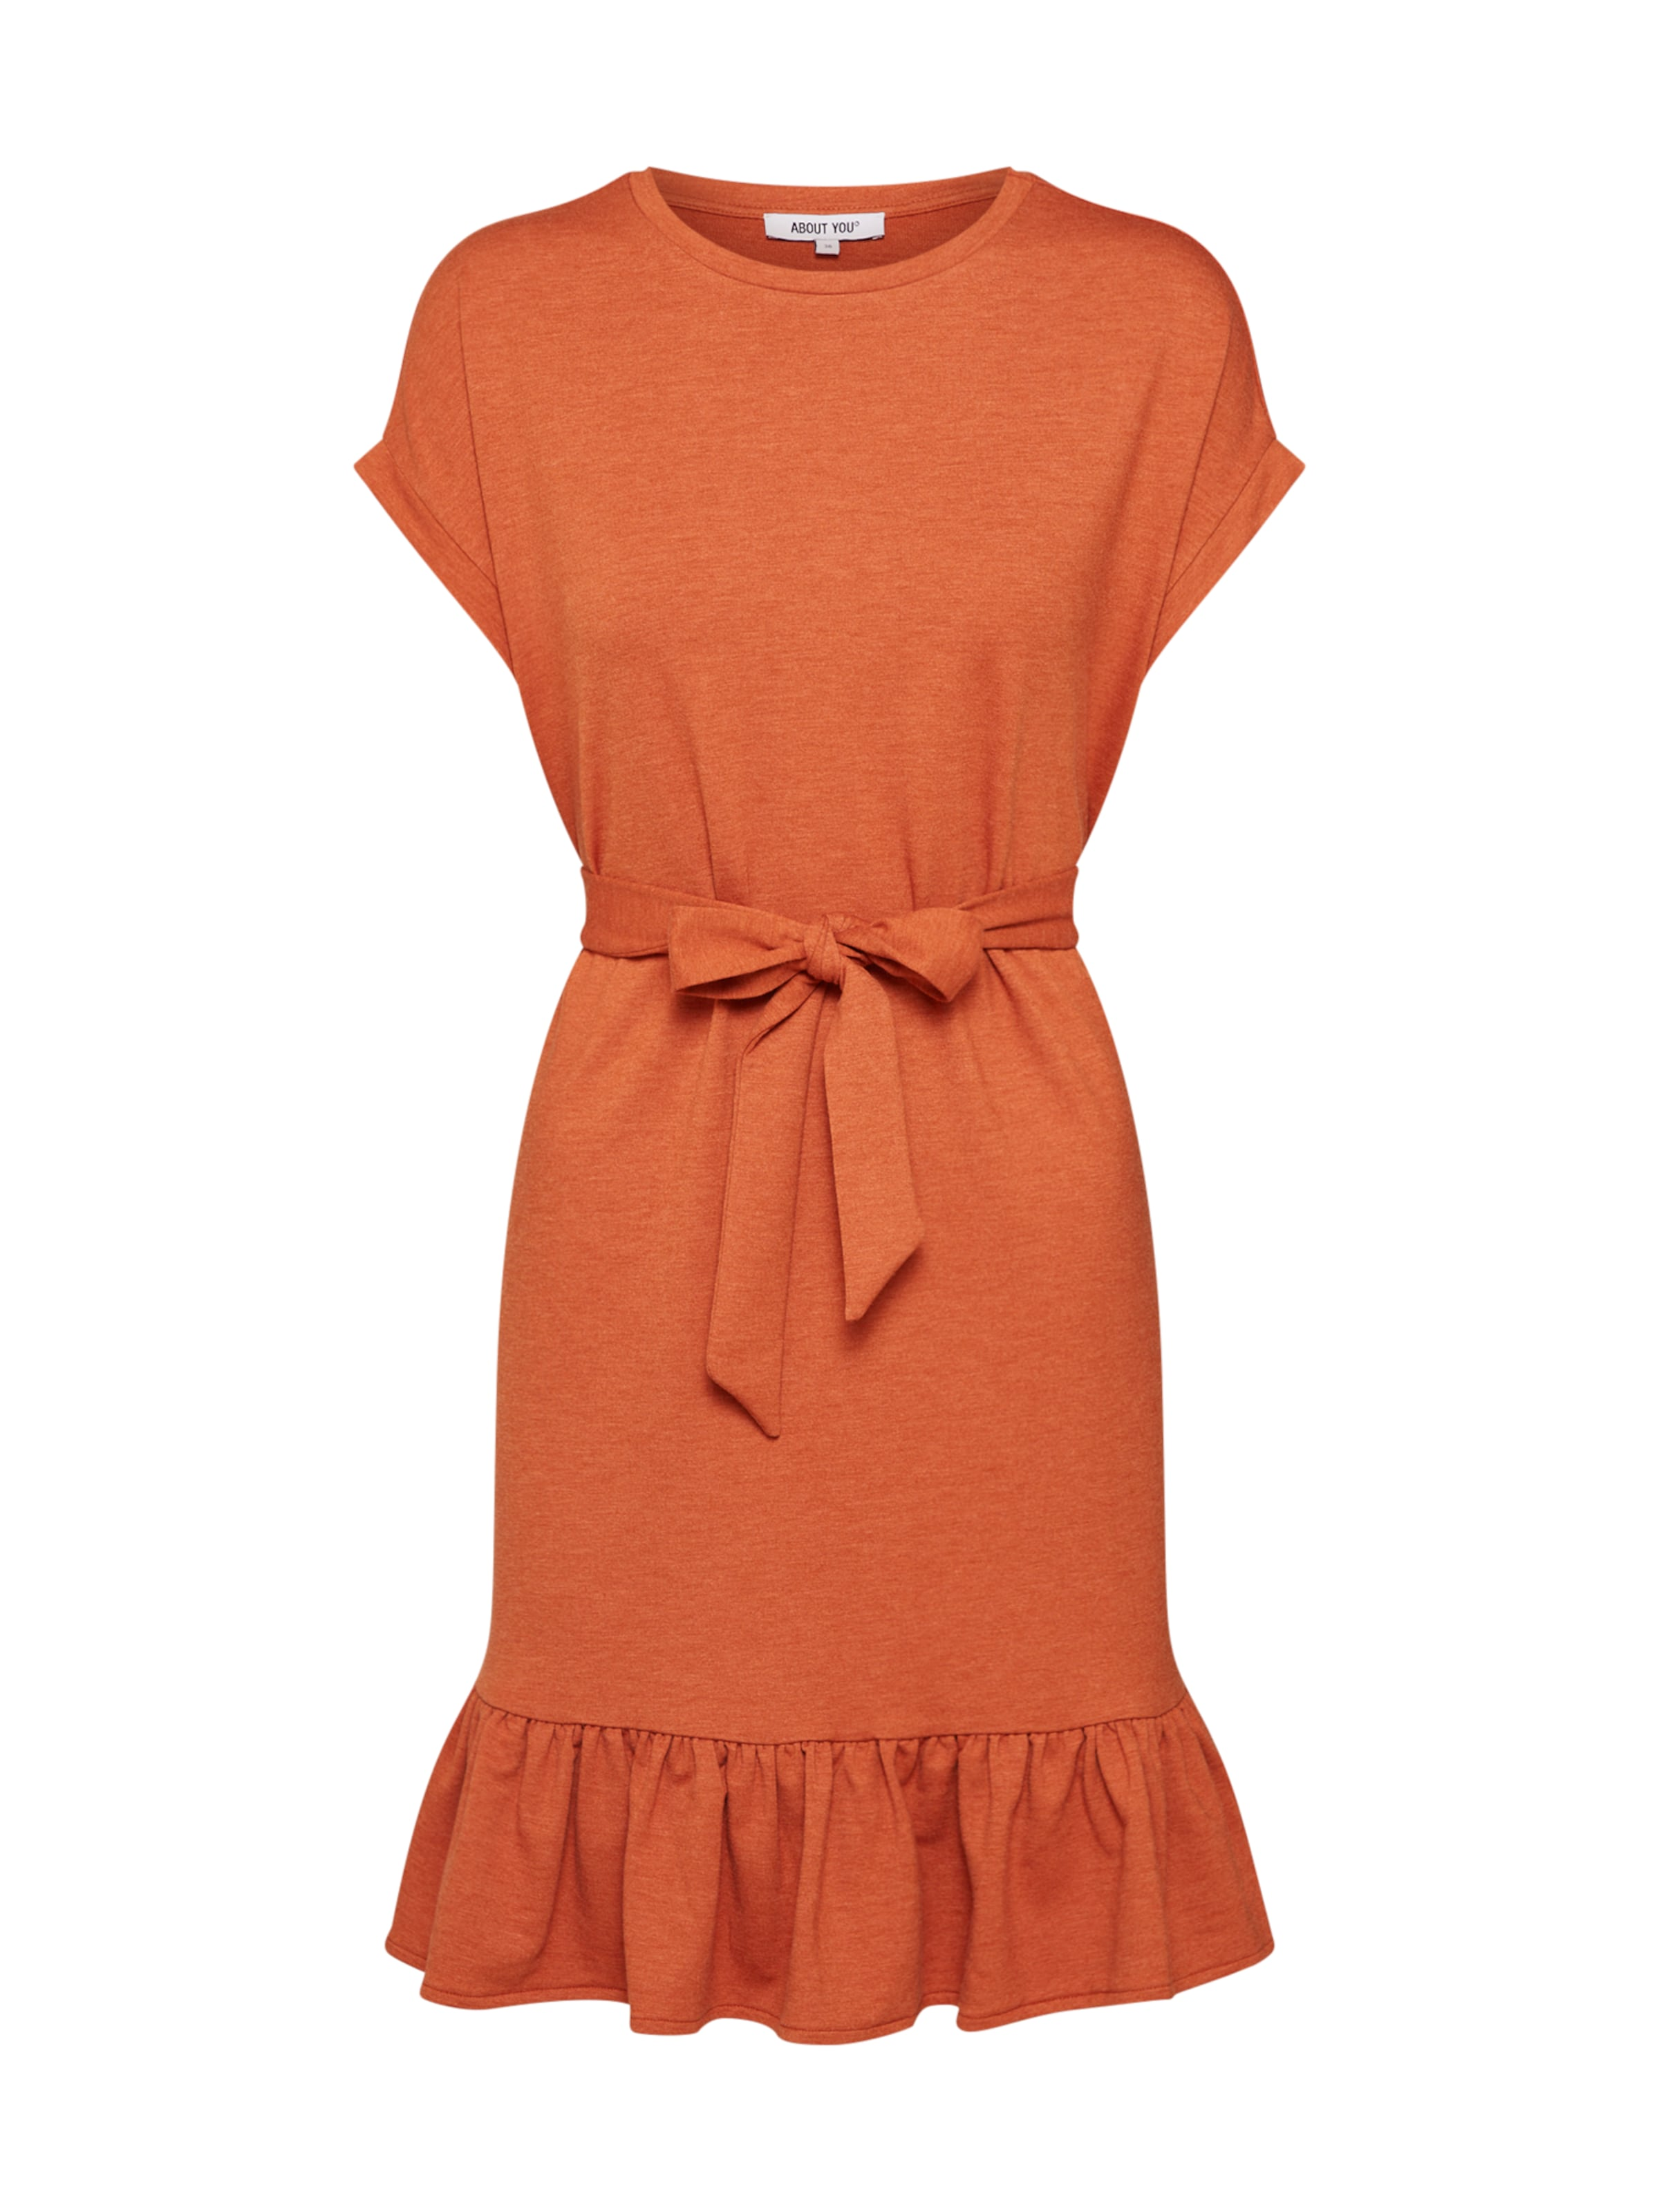 About Kleid Orange You 'robin' In 54AjqRLc3S